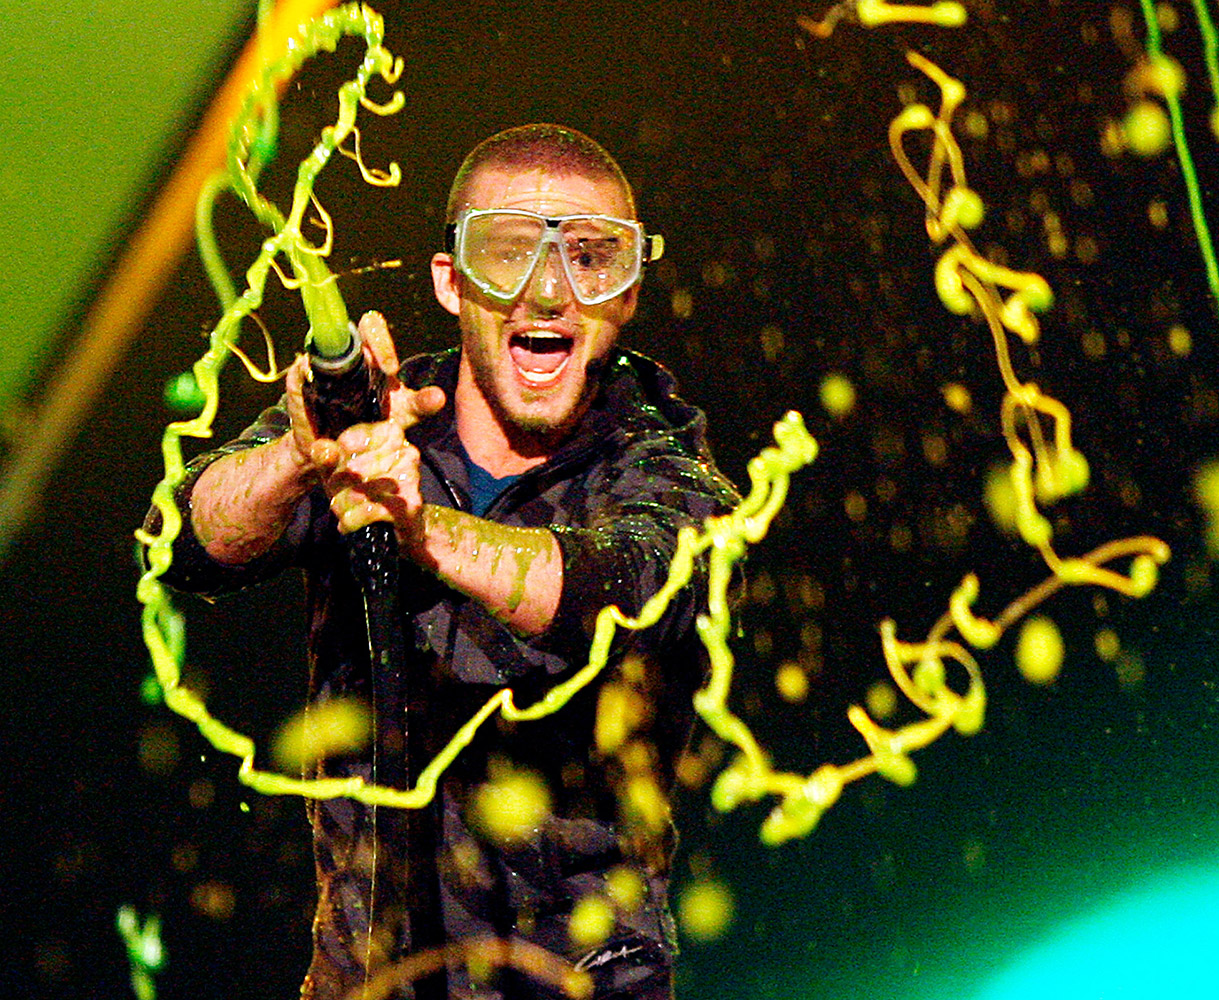 Six years after 'N Sync got slimed, the solo singer hosted the Kids' Choice Awards at the Pauley Pavilion in Westwood, Calif., on March 31, 2007. Timberlake got his revenge when he and Vince Vaughn (not pictured) closed the show by shooting slime at audience members.